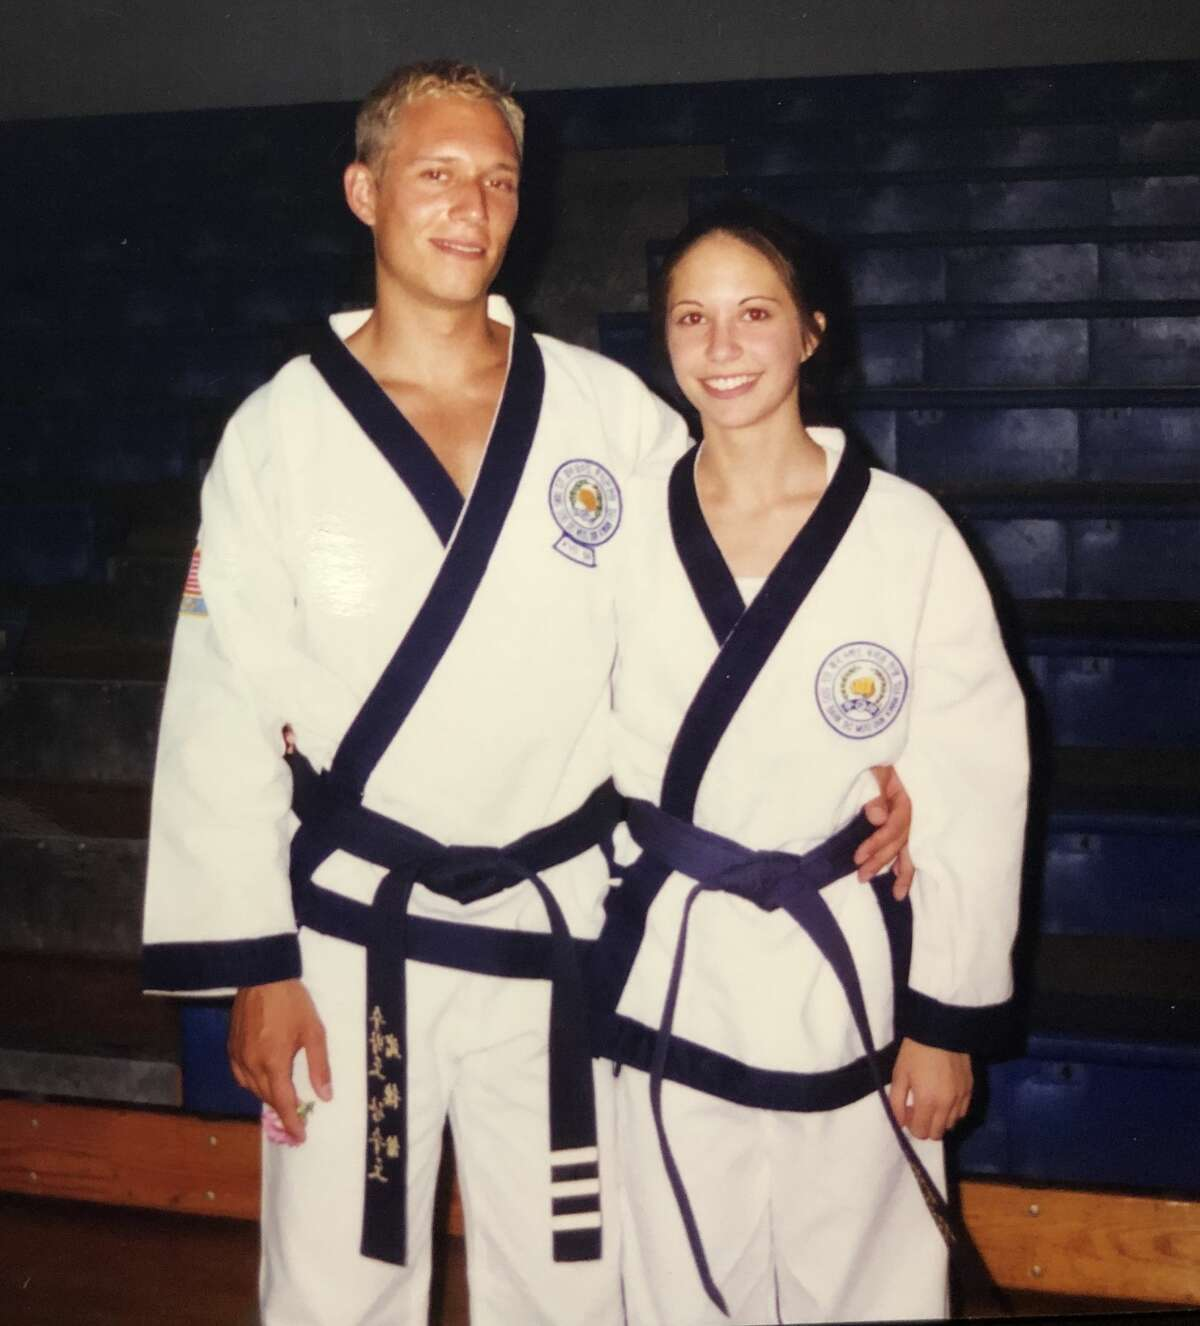 1. I got my black belt in karate when I was 15 years old. My first job then followed as a karate instructor.